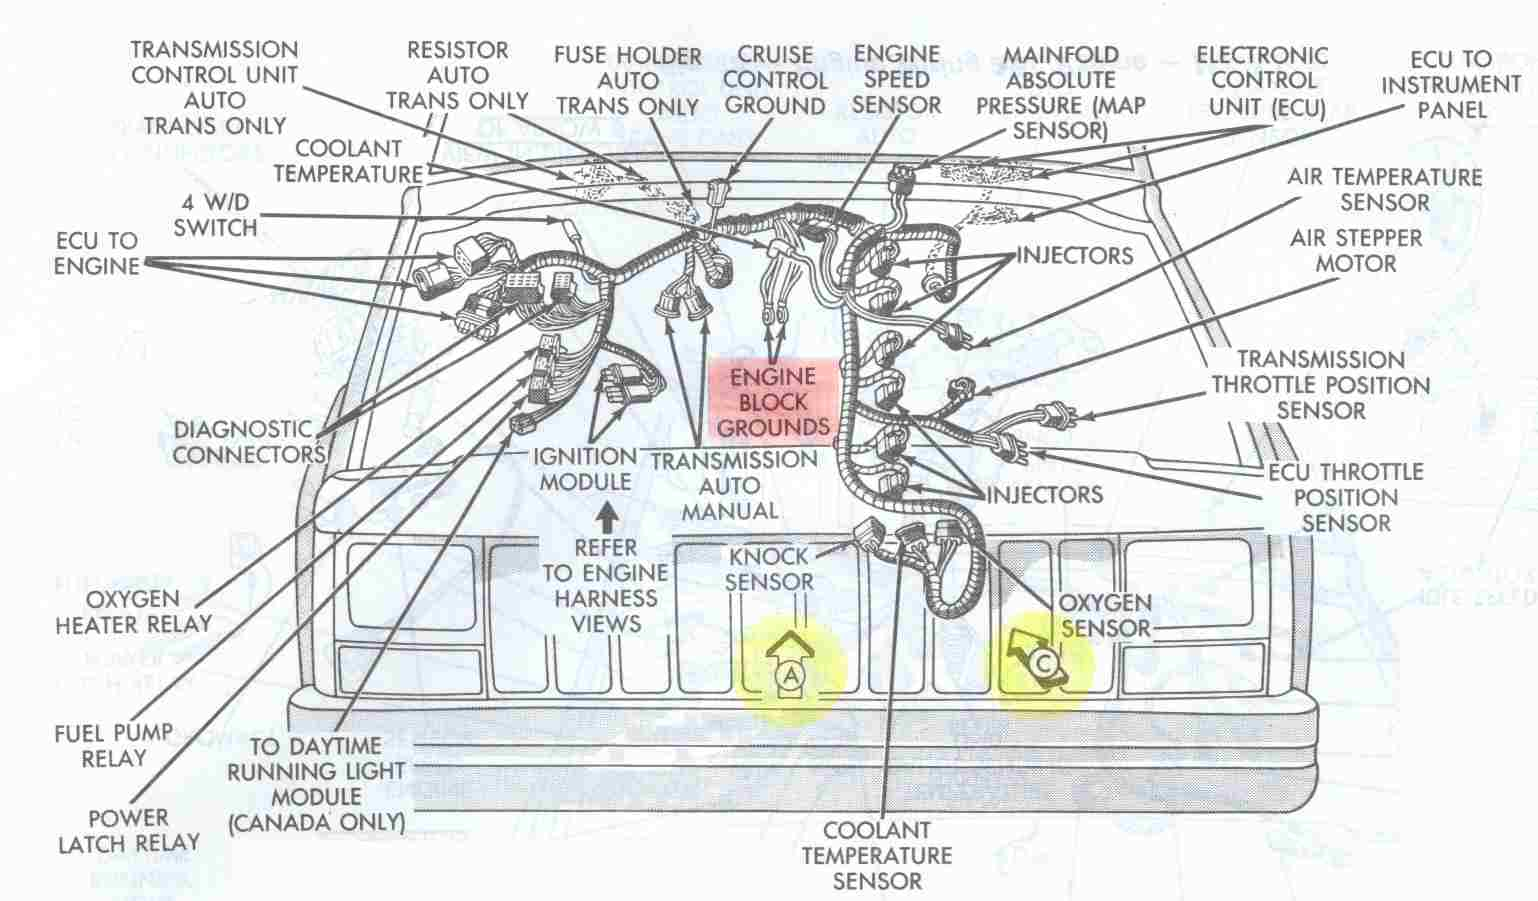 Electrical_Engine_Ground_Points_Overview jeep cherokee electrical diagnosing erratic behavior of engine 95 jeep cherokee wiring diagram at edmiracle.co